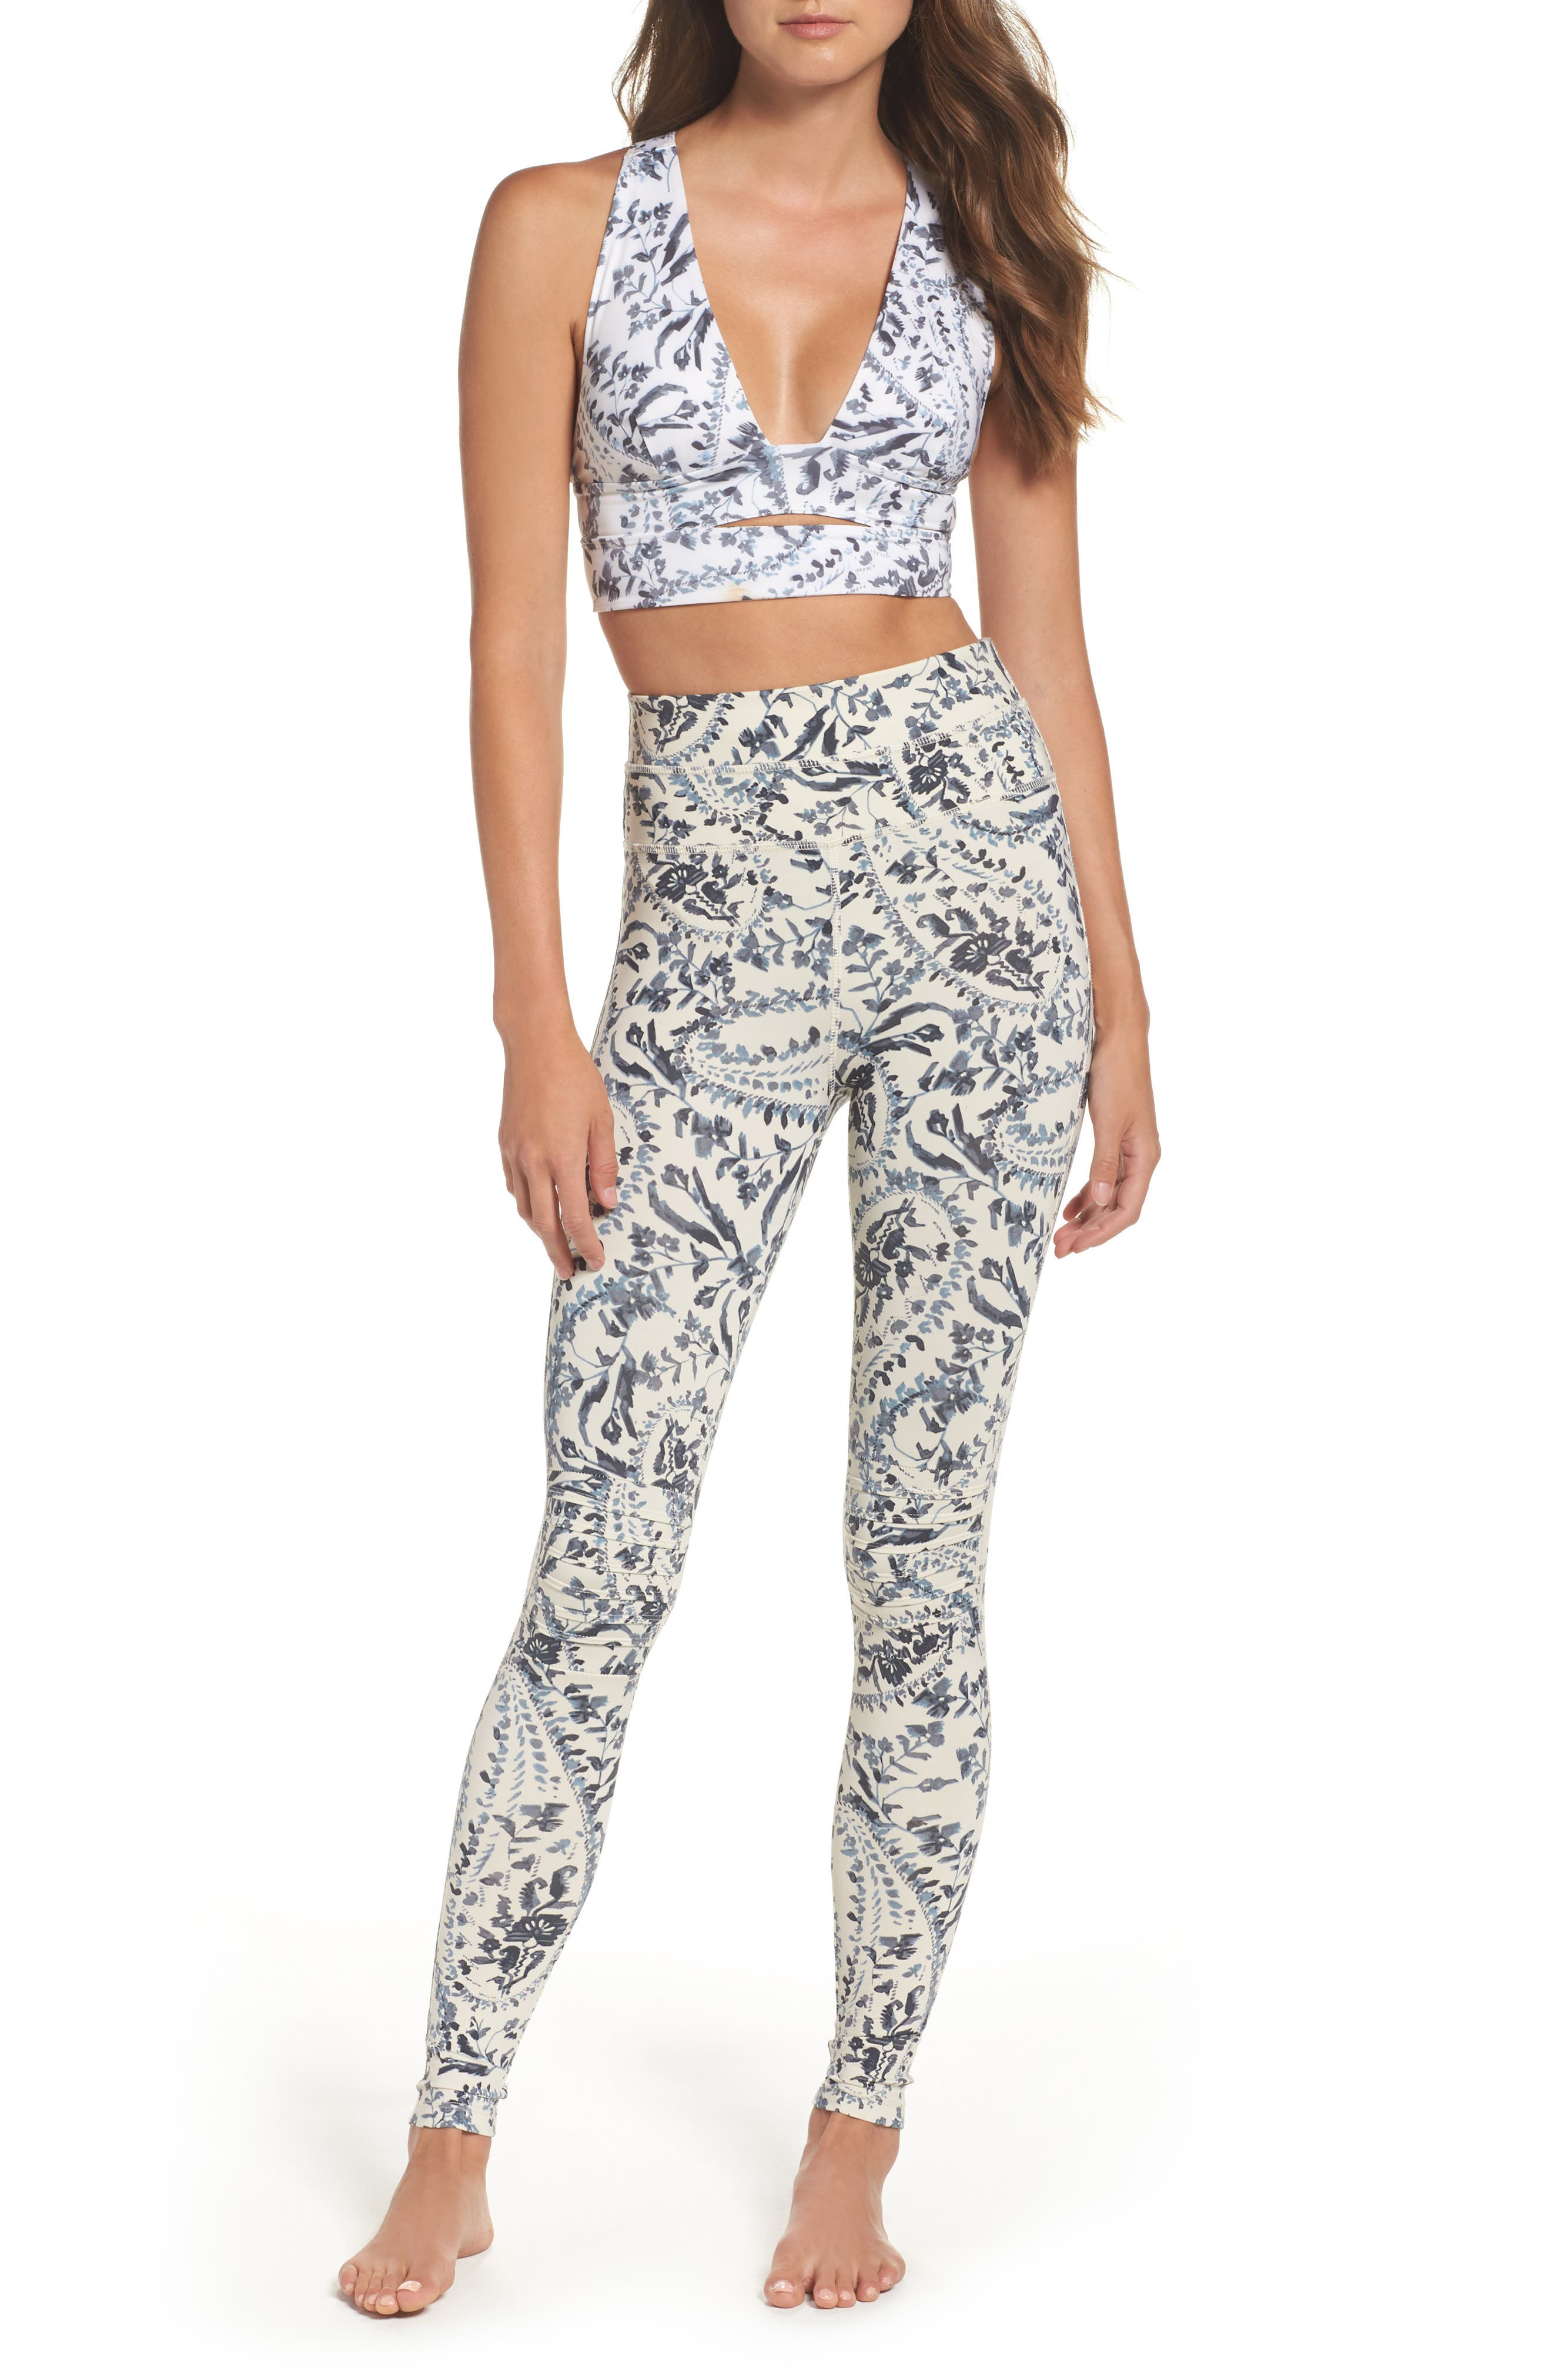 FP Movement Print City Slicker High Waist Leggings,                             Alternate thumbnail 8, color,                             400